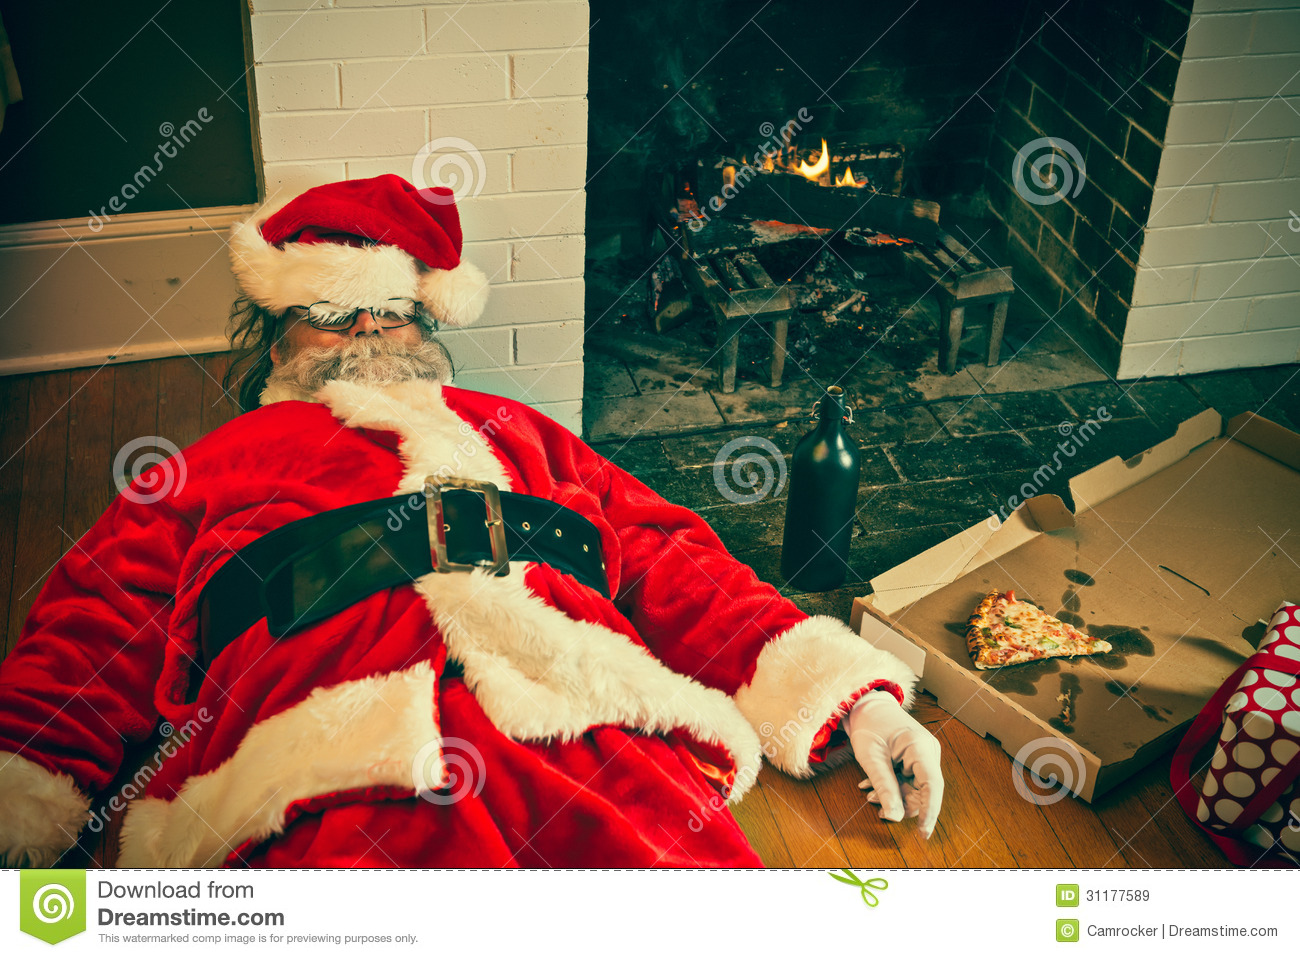 drunk-passed-out-santa-claus-partied-too